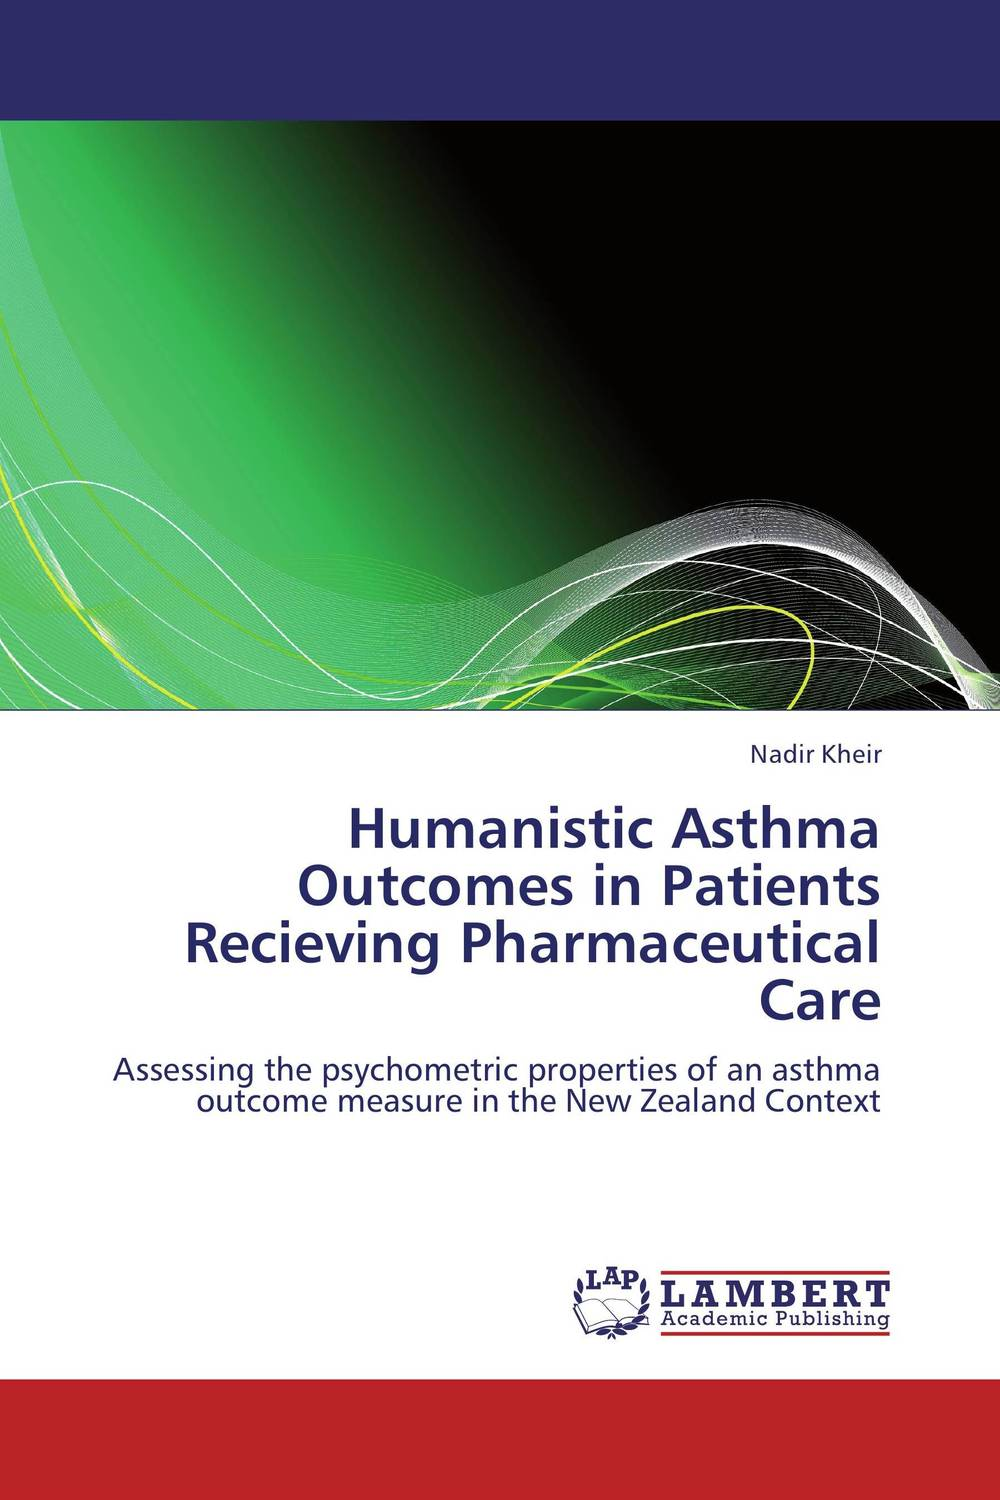 купить Humanistic Asthma Outcomes in Patients Recieving Pharmaceutical Care недорого